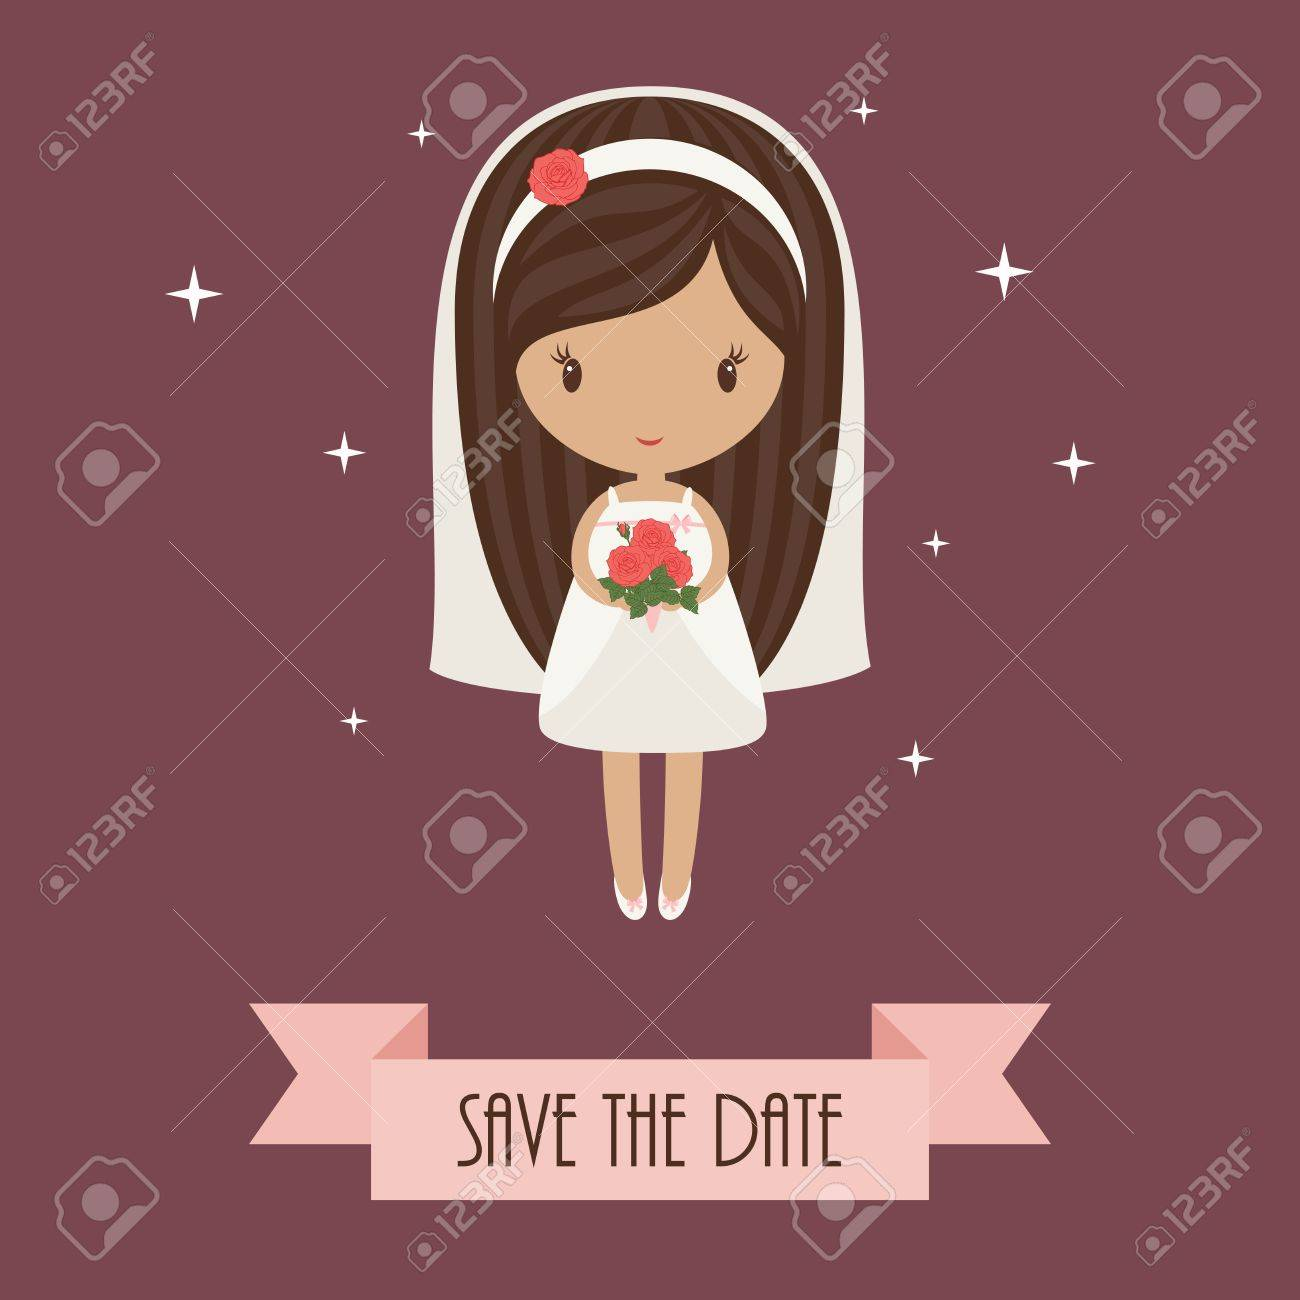 Romantic cartoon bride holding bouquet of roses   Wedding invitation Stock Vector - 20755230